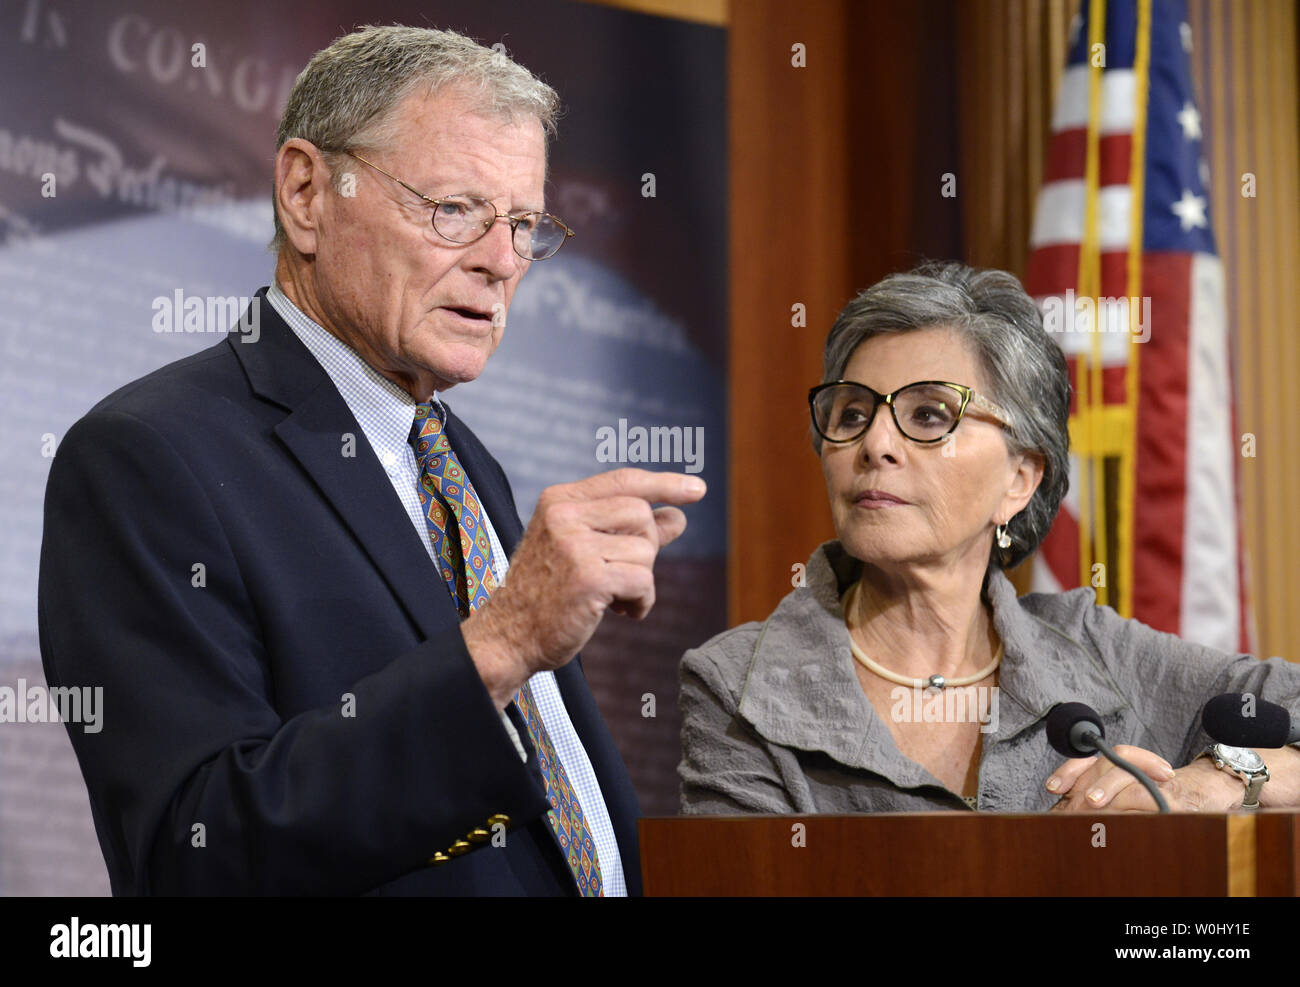 Sen. James Imhofe (R-OK), (L), makes remarks as Sen. Barbara Boxer (D-CA)   listens on bipartisan legislation to continue funding the Federal Highway Trust Fund, at the U.S. Capitol, July 30, 2015, in Washington, DC. Congress appears ready to pass a temporary spending 'patch' since the House has already recessed for the summer.        Photo by Mike Theiler/UPI - Stock Image